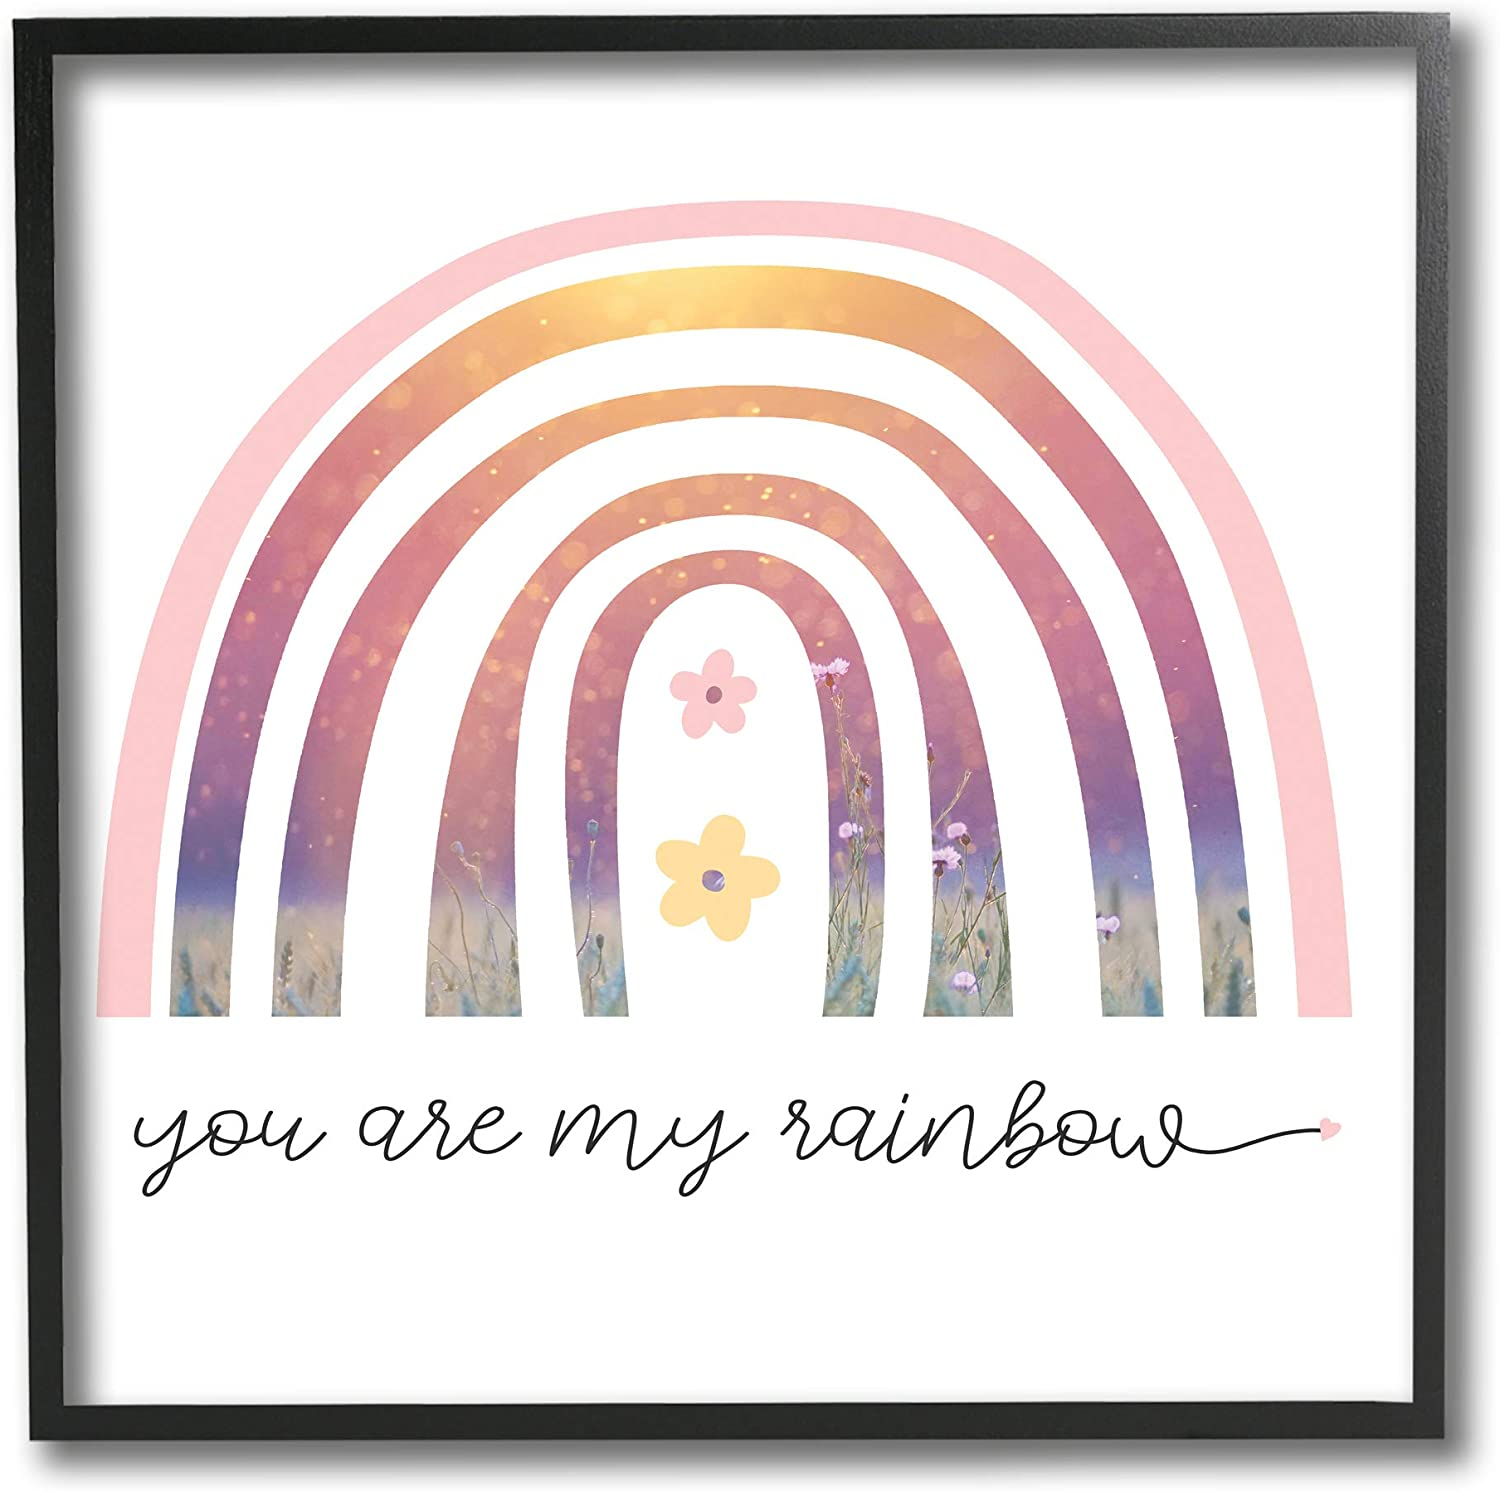 Designed by Daphne Polselli Black Framed Wall Art 12 x 12 Stupell Industries Youre My Rainbow Phrase Spring Pink Florals White